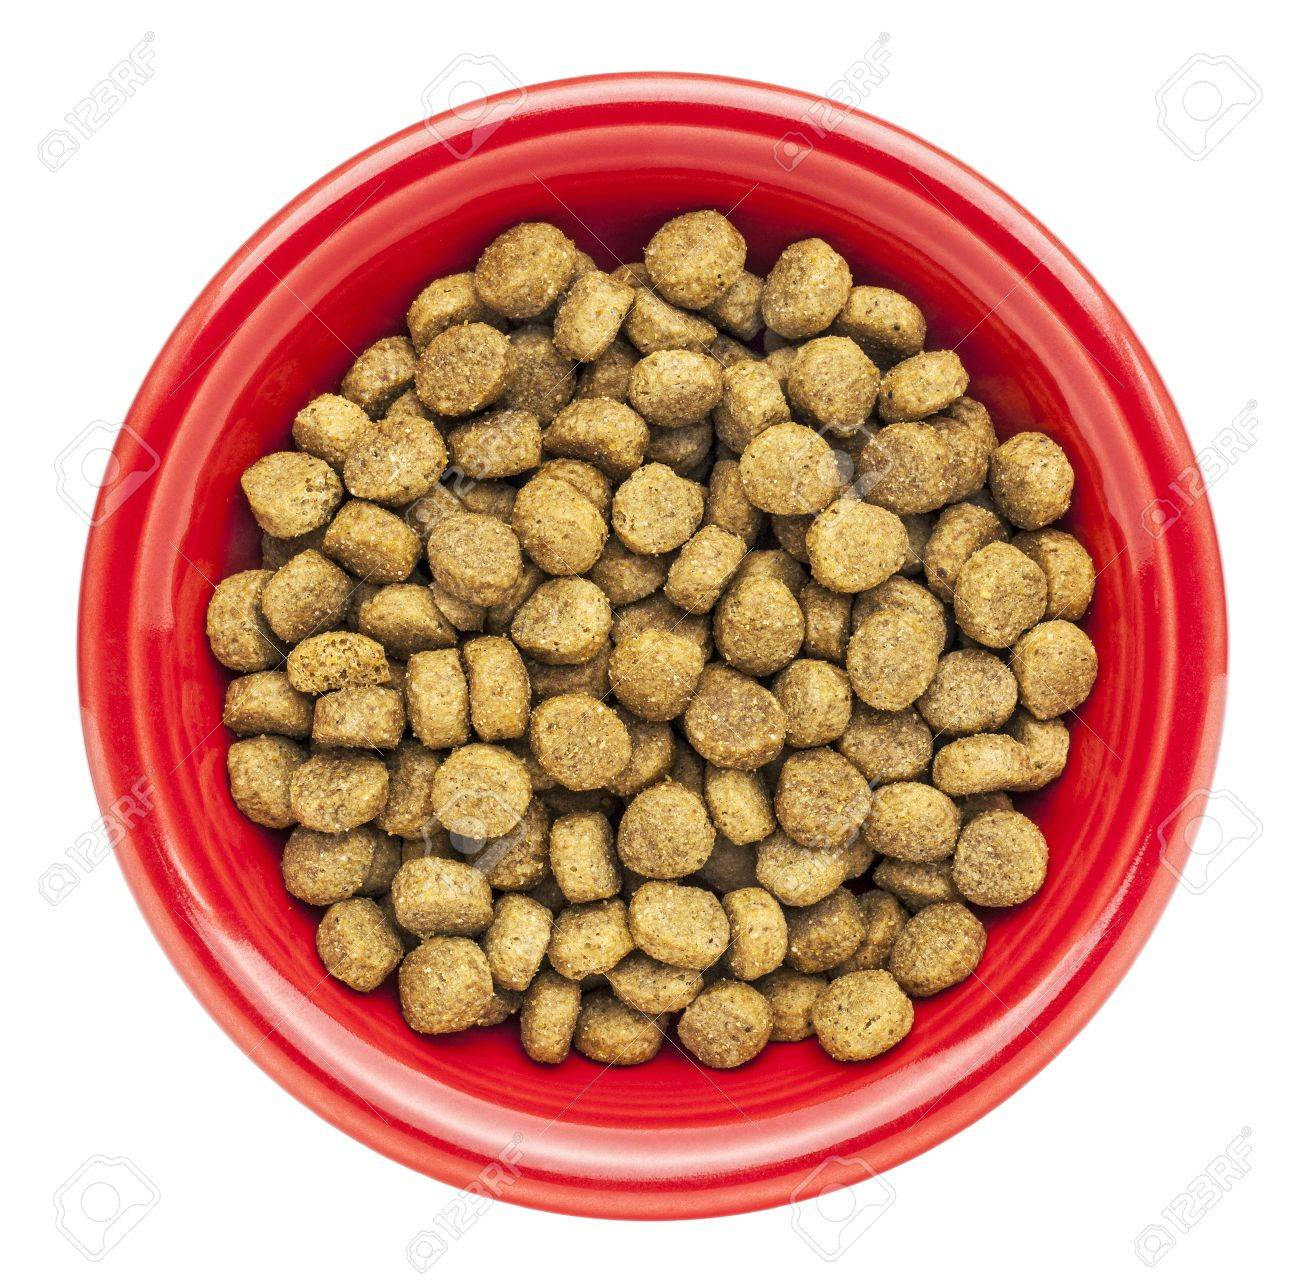 red bowl of dry dog food isolated on white Stock Photo - 17331762